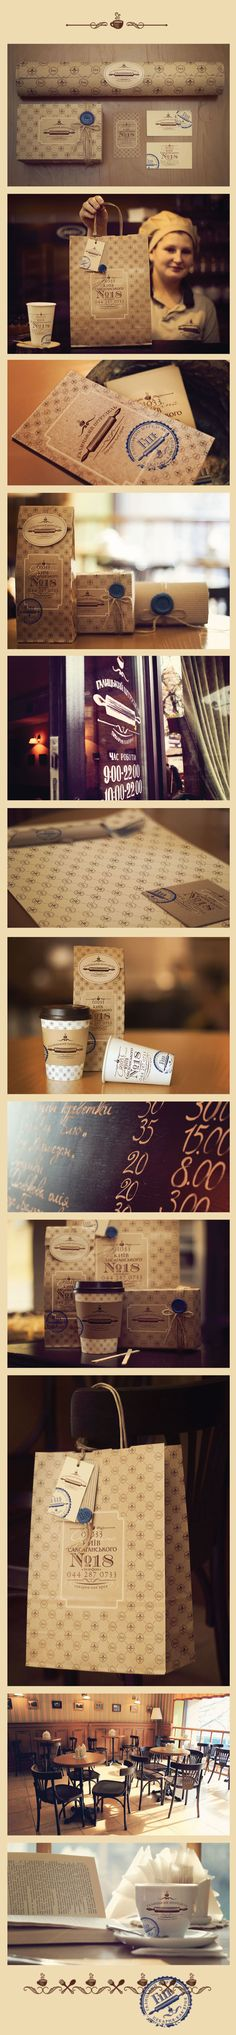 "Cafe-bakery ""Galician strudel"" by Olena Fedorova #identity #packaging #branding PD"